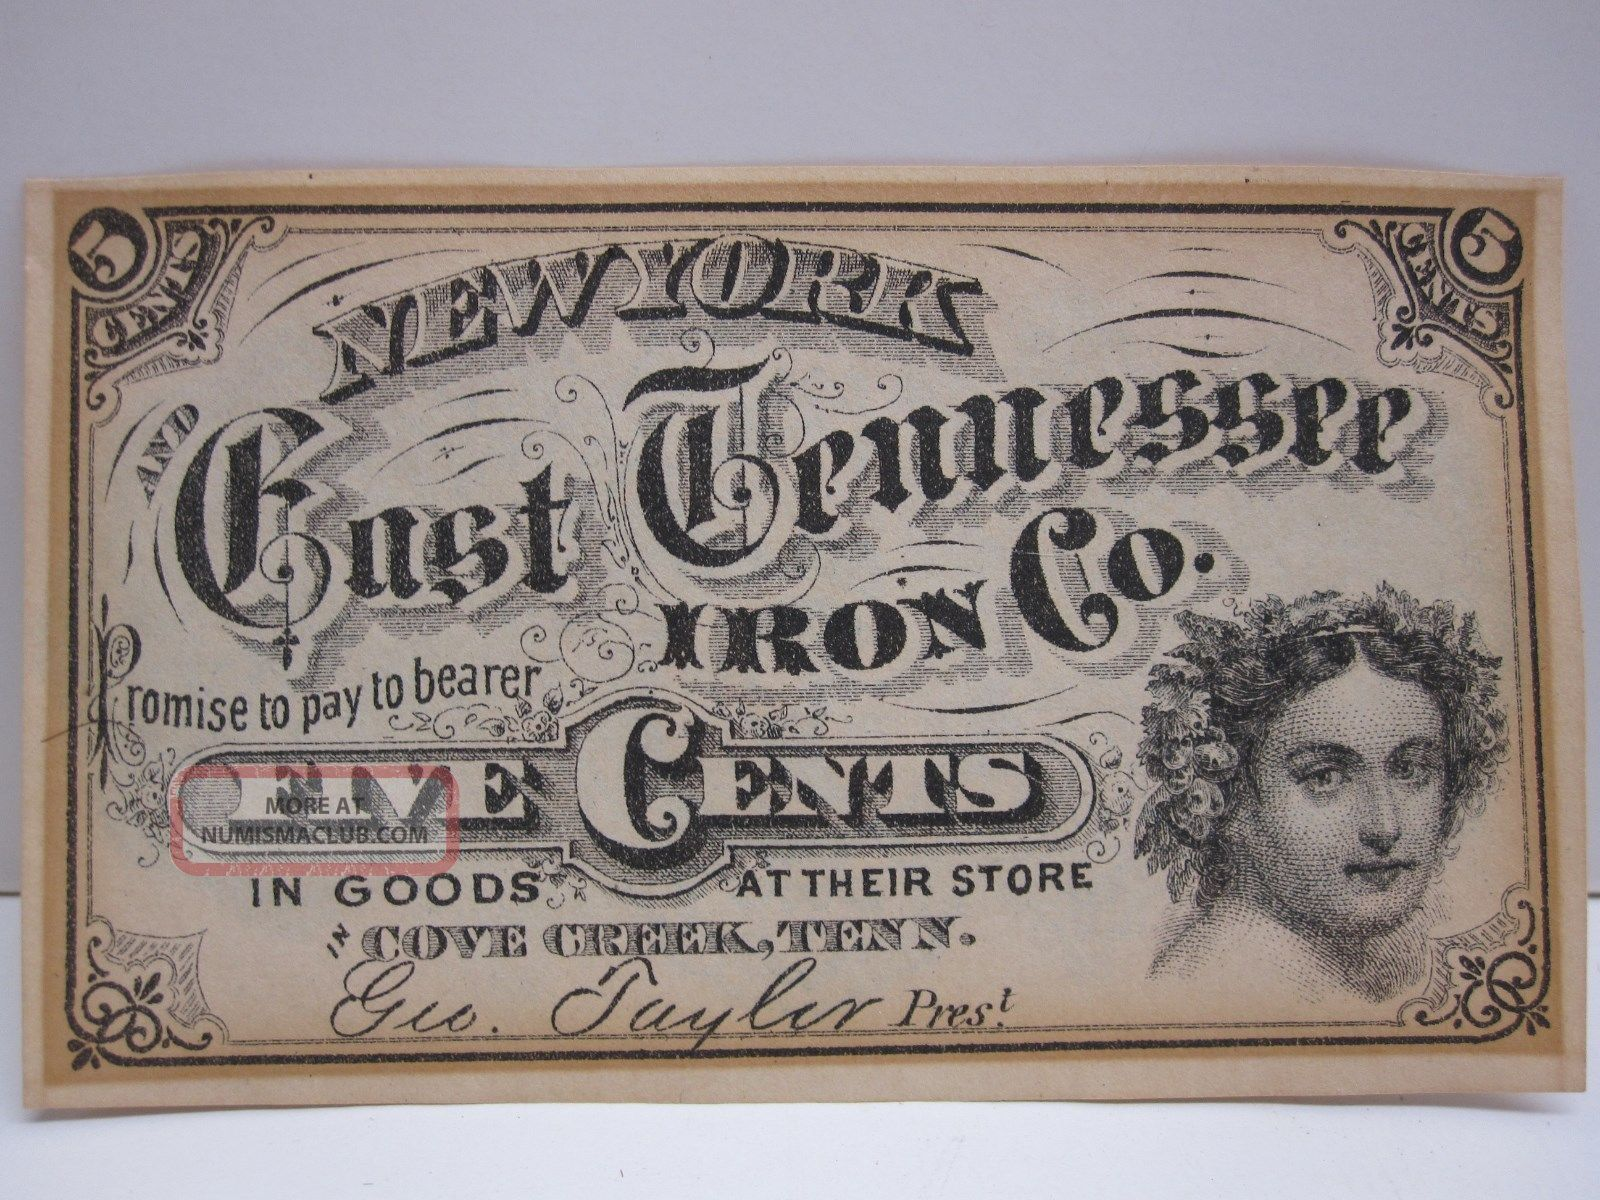 York And East Tennessee Iron Company 5 Cent Fractional Script Note Stocks & Bonds, Scripophily photo